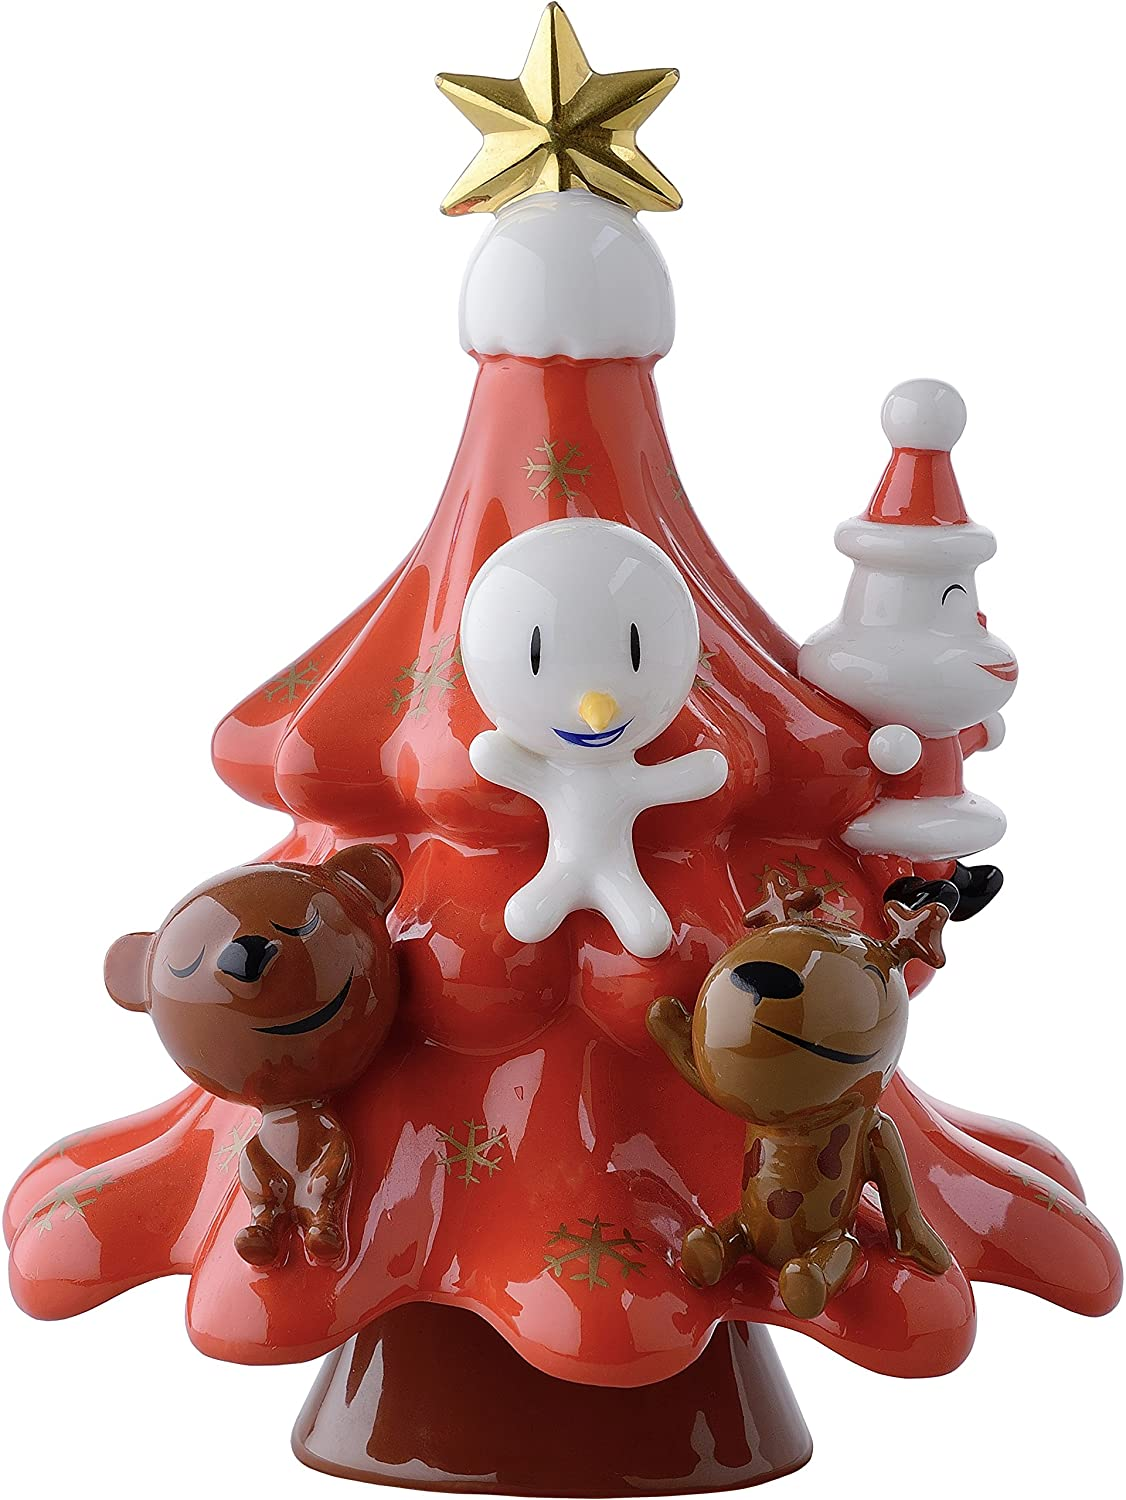 Alessi Porcelain Hand-Decorated Xmas Friends Christmas Ornament, Multi-Colour AMGI51